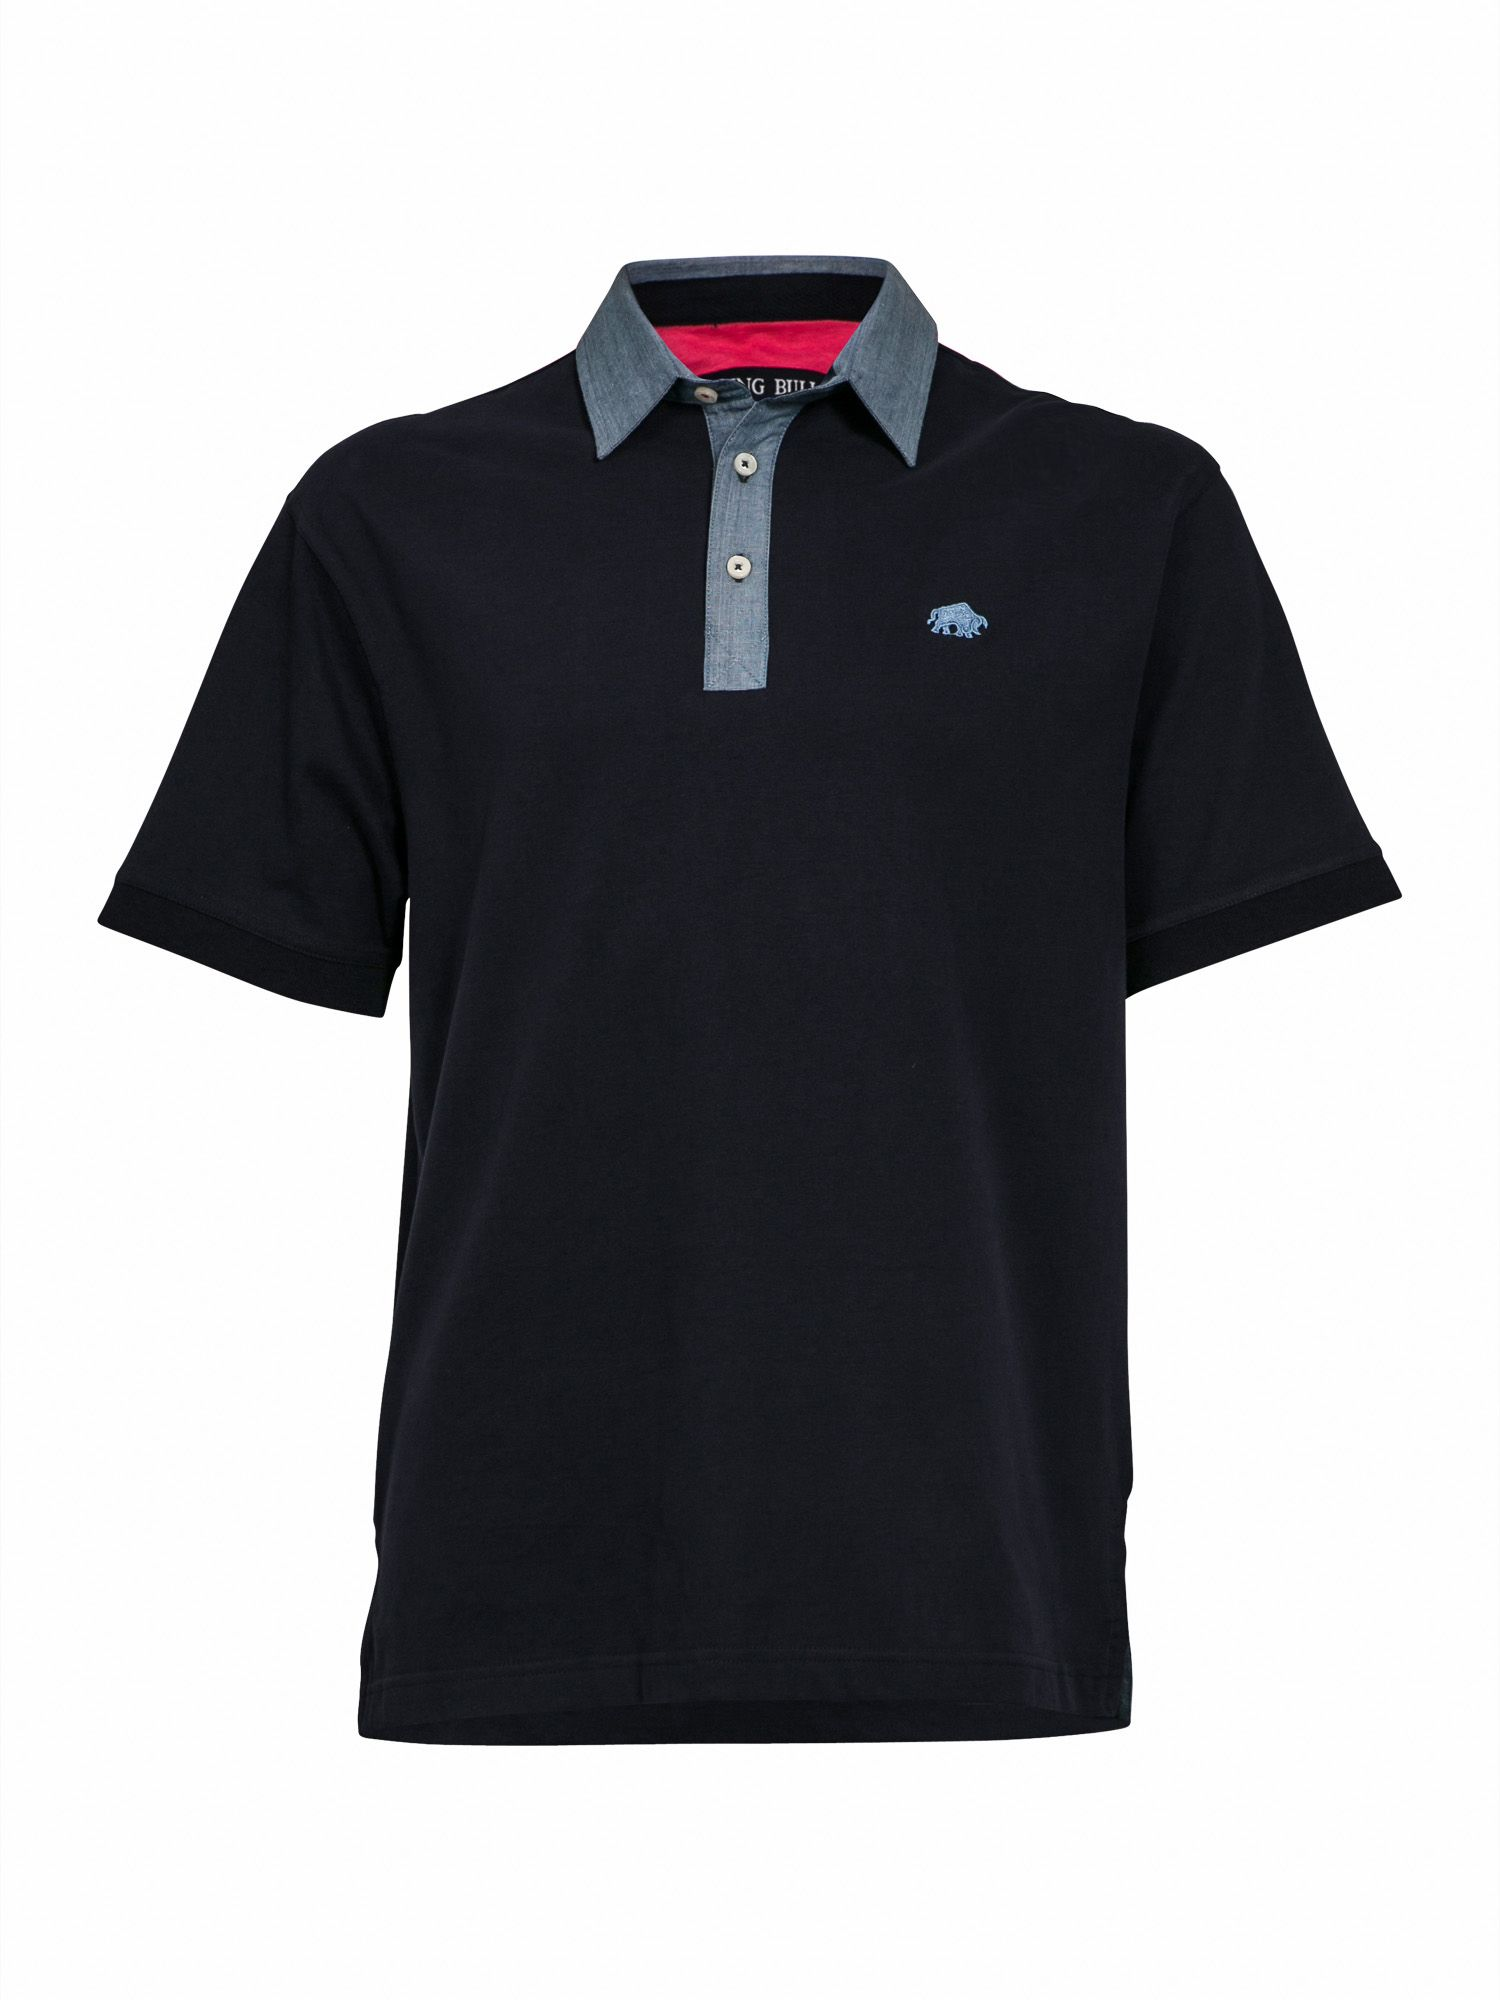 Big and Tall Rugby collared polo shirt